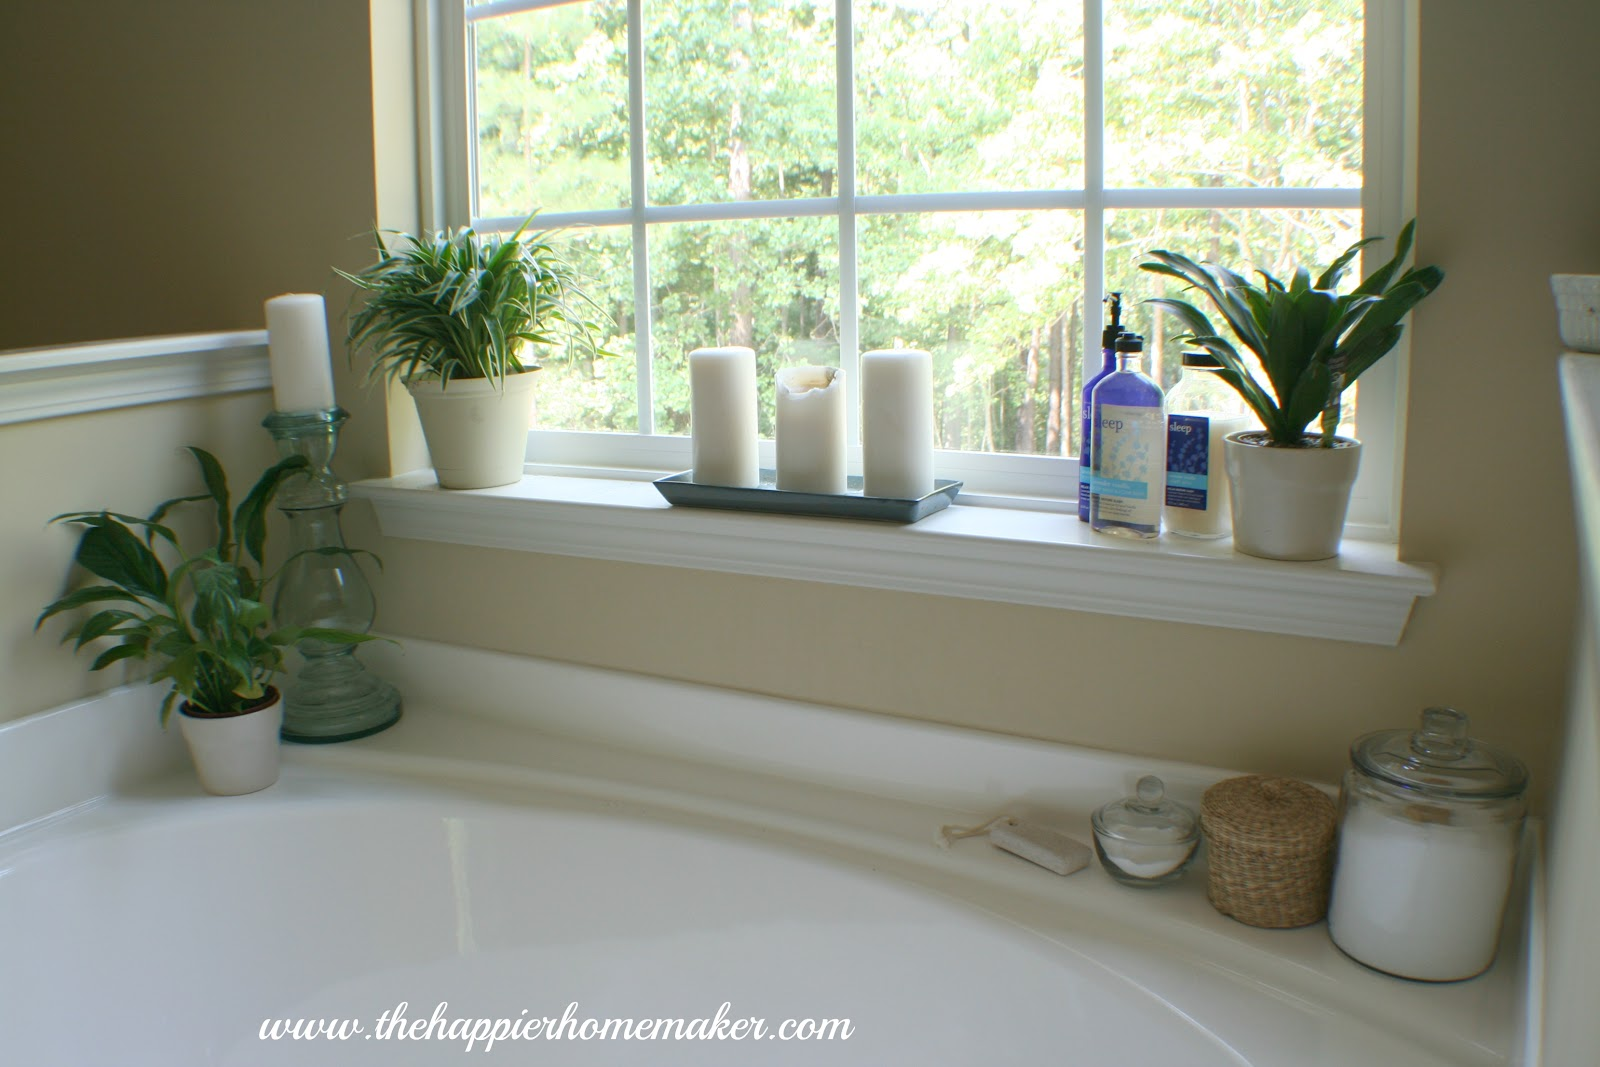 Http Www Thehappierhomemaker Com 2012 07 Decorating Around Bathtub